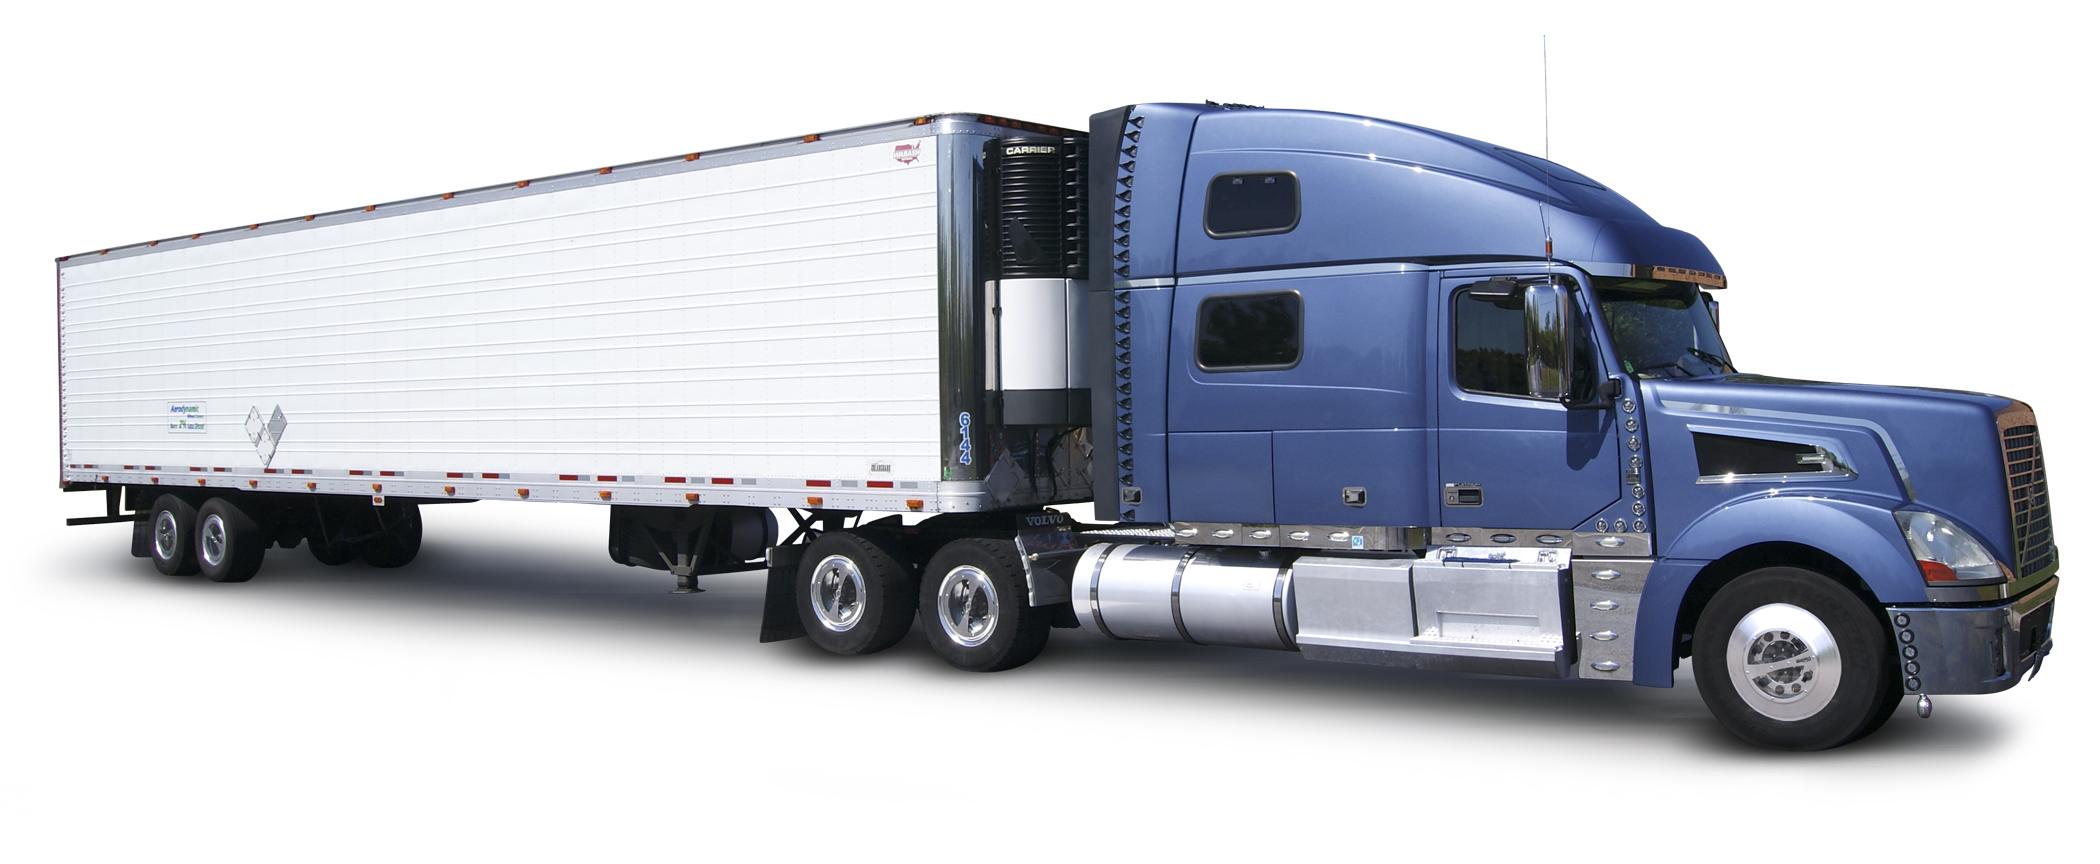 Semi Truck & Tractor Trailer Detailing # #521160.